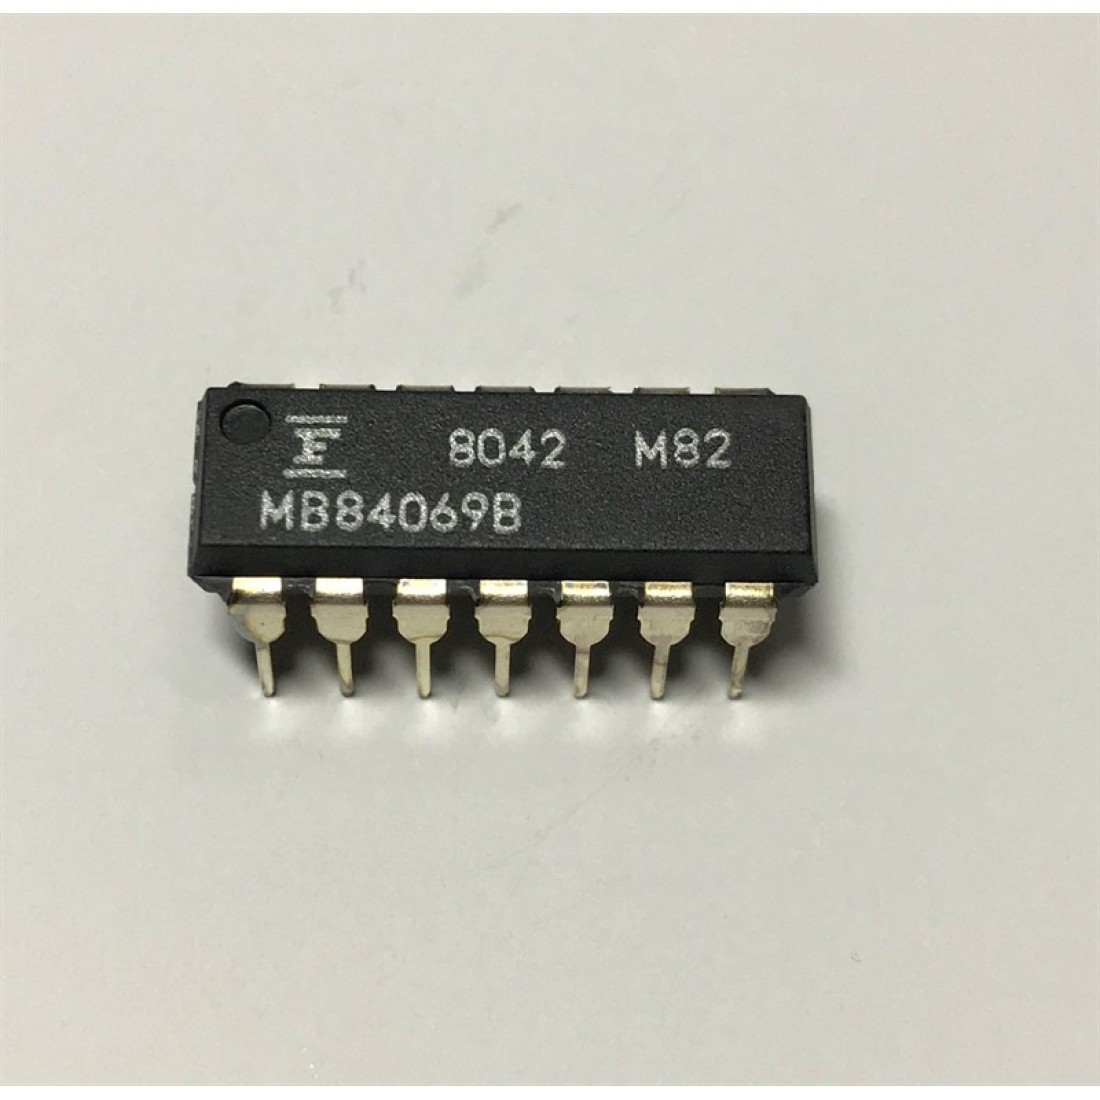 Pantazopoulos Thanasis Solomou Str Ic Mb 84069b Pioneer Spare Integrated Circuit Parts